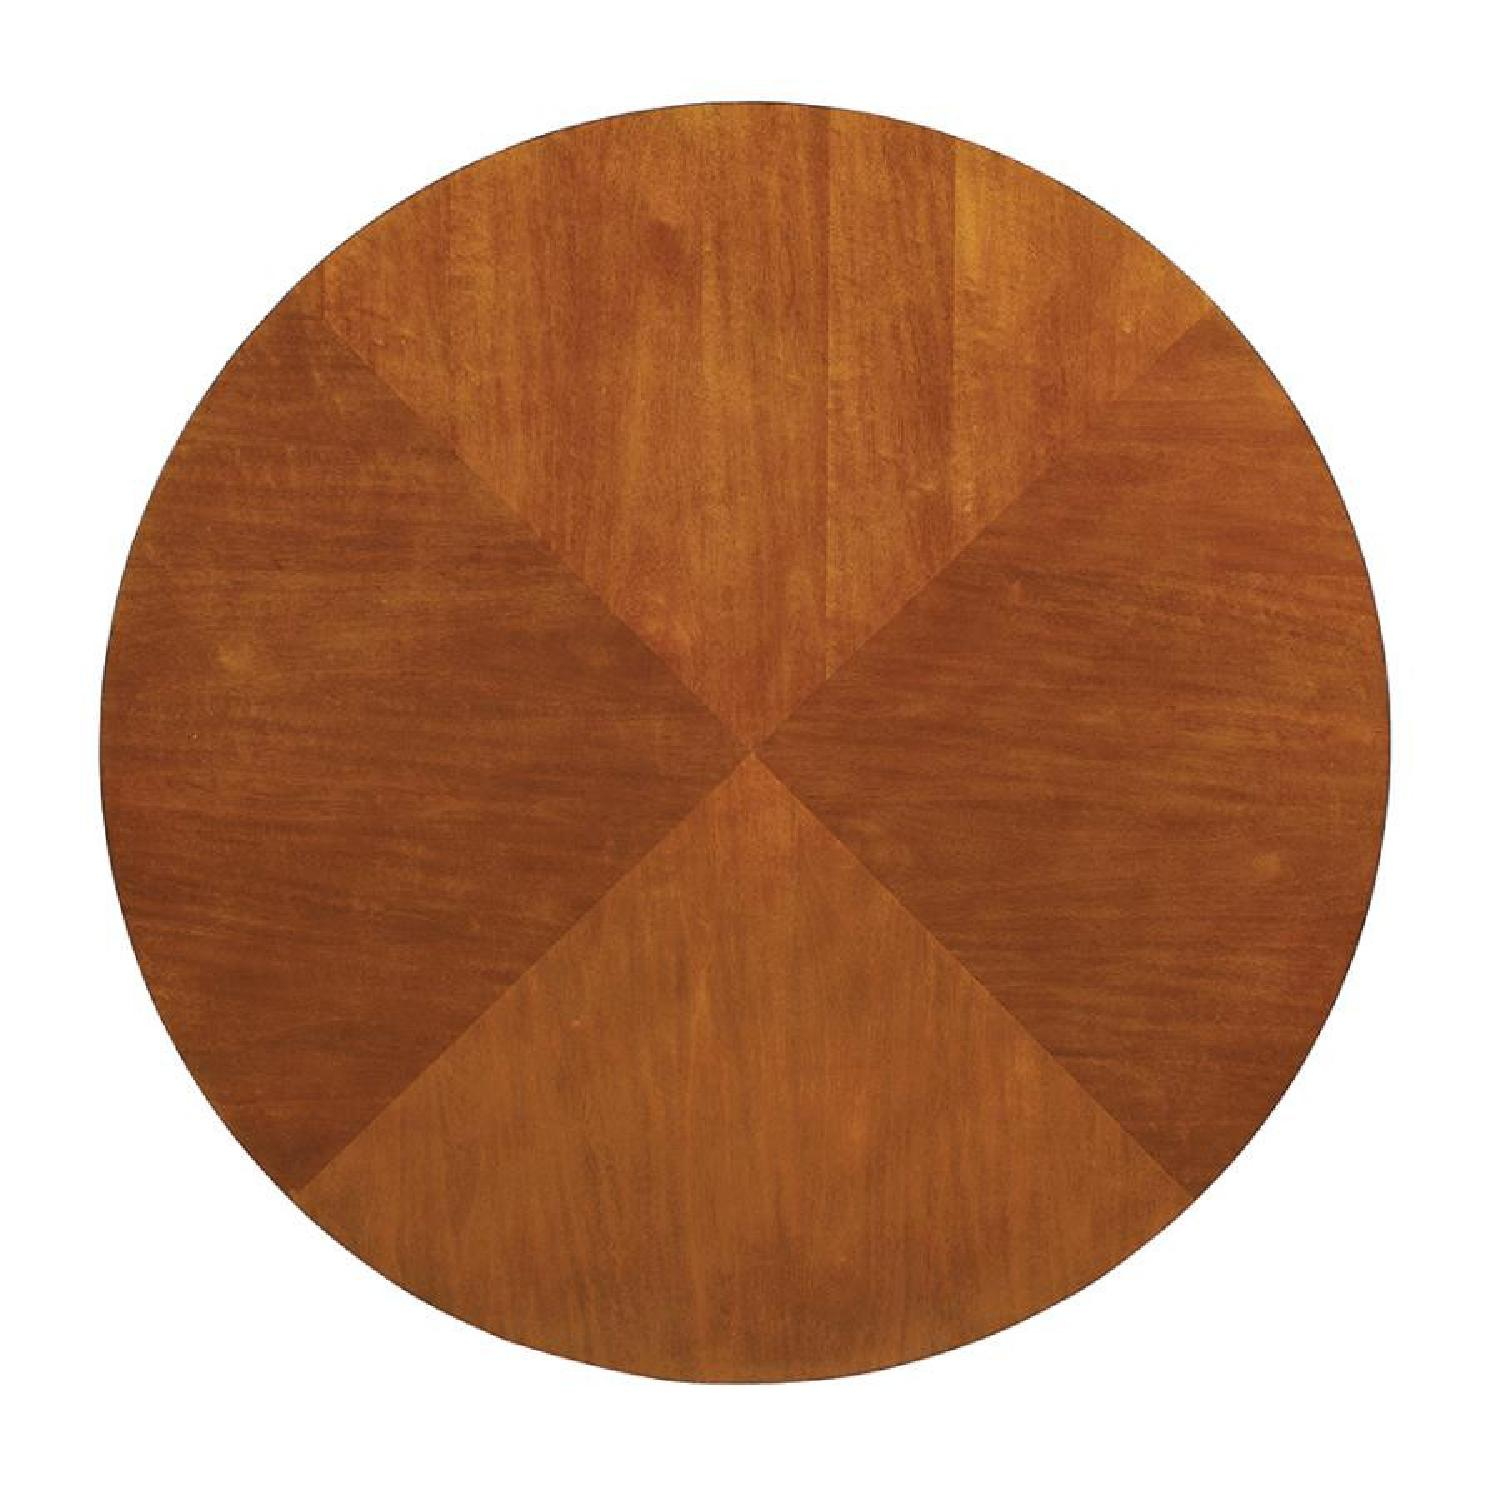 Modern Round Table in Amber w/ Black Base - image-1